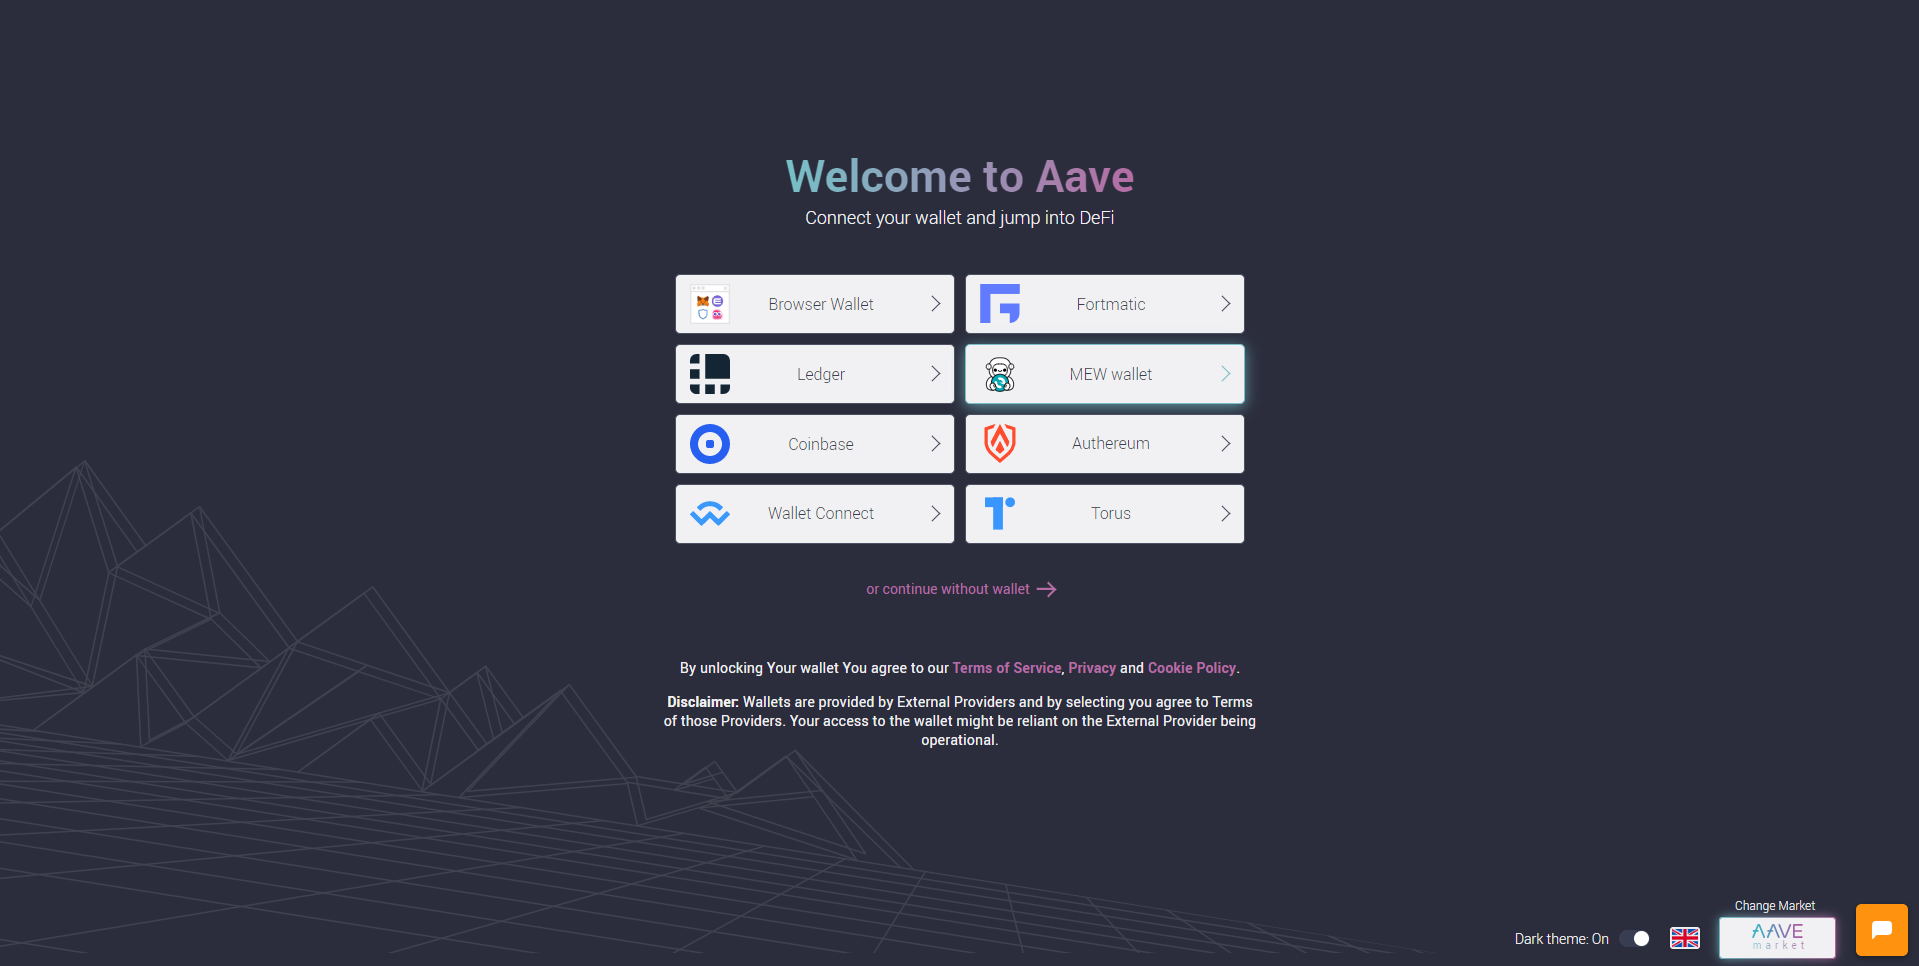 Image of Aave access screen